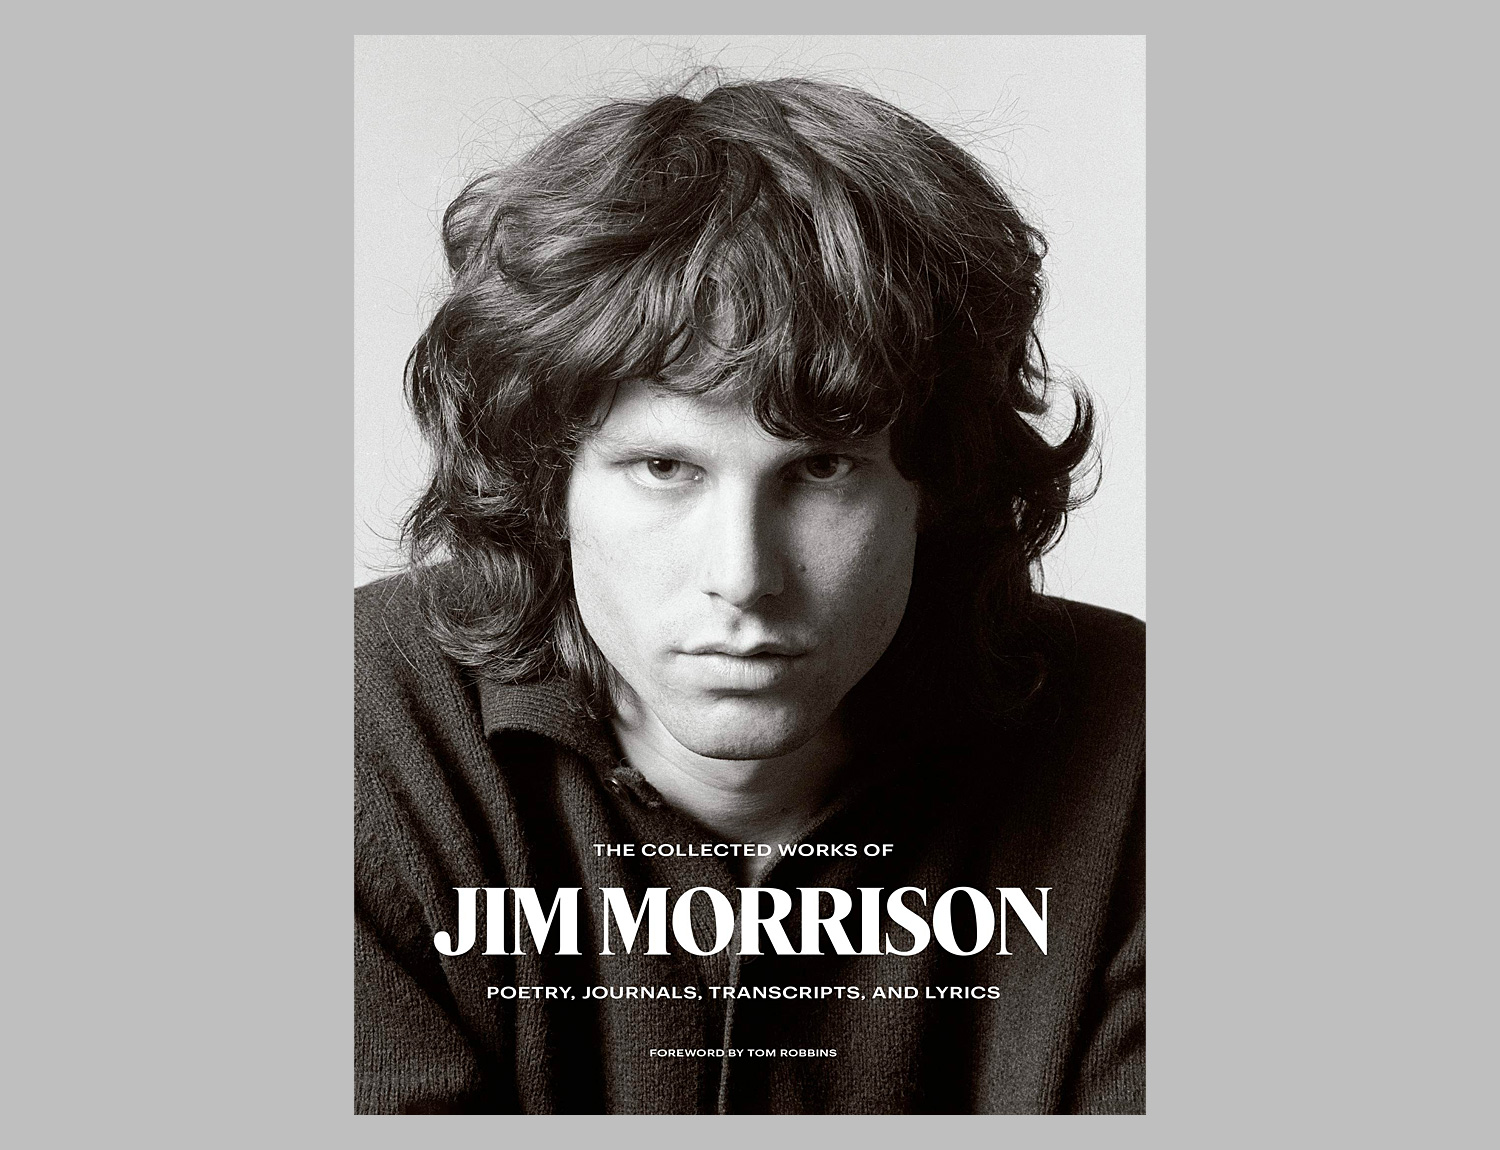 The Collected Works of Jim Morrison: Poetry, Journals, Transcripts, and Lyrics at werd.com